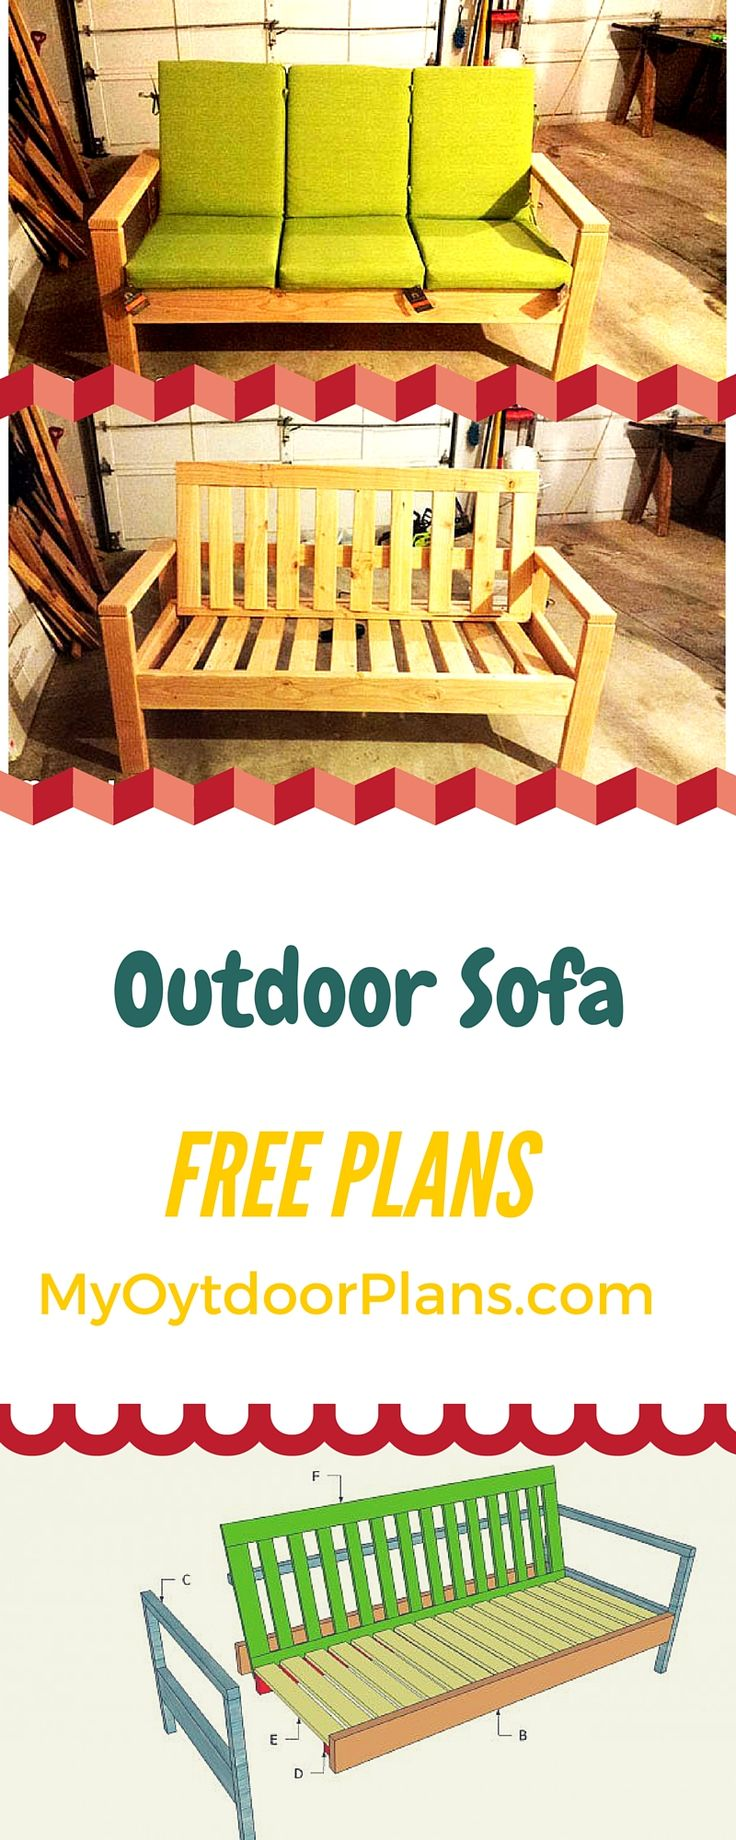 How to build a wingback chair my woodworking plans - Outdoor Sofa Plans Use My Step By Step Instructions And Build A Simple Wood Sofa